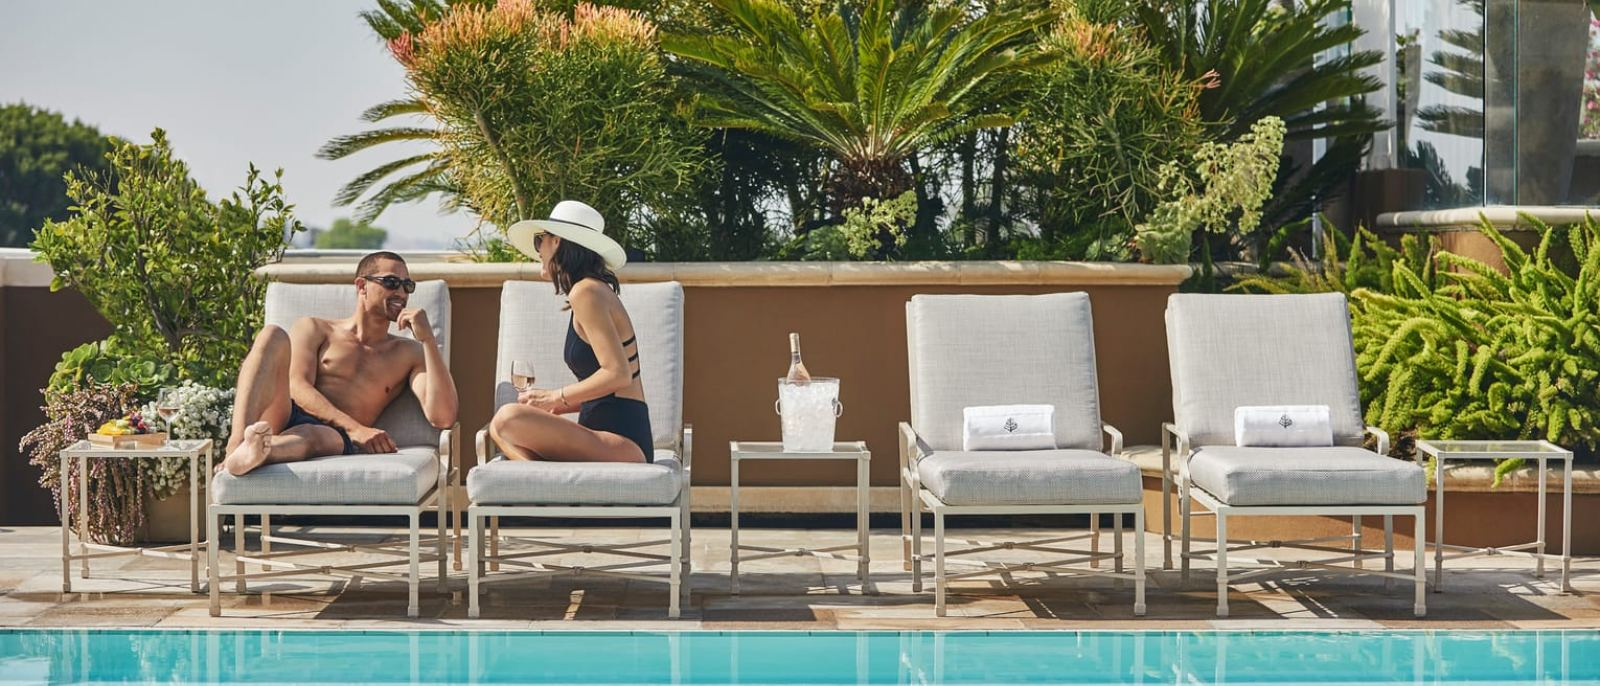 Upper Pool Deck | Photo: Four Seasons Los Angeles at Beverly Hills